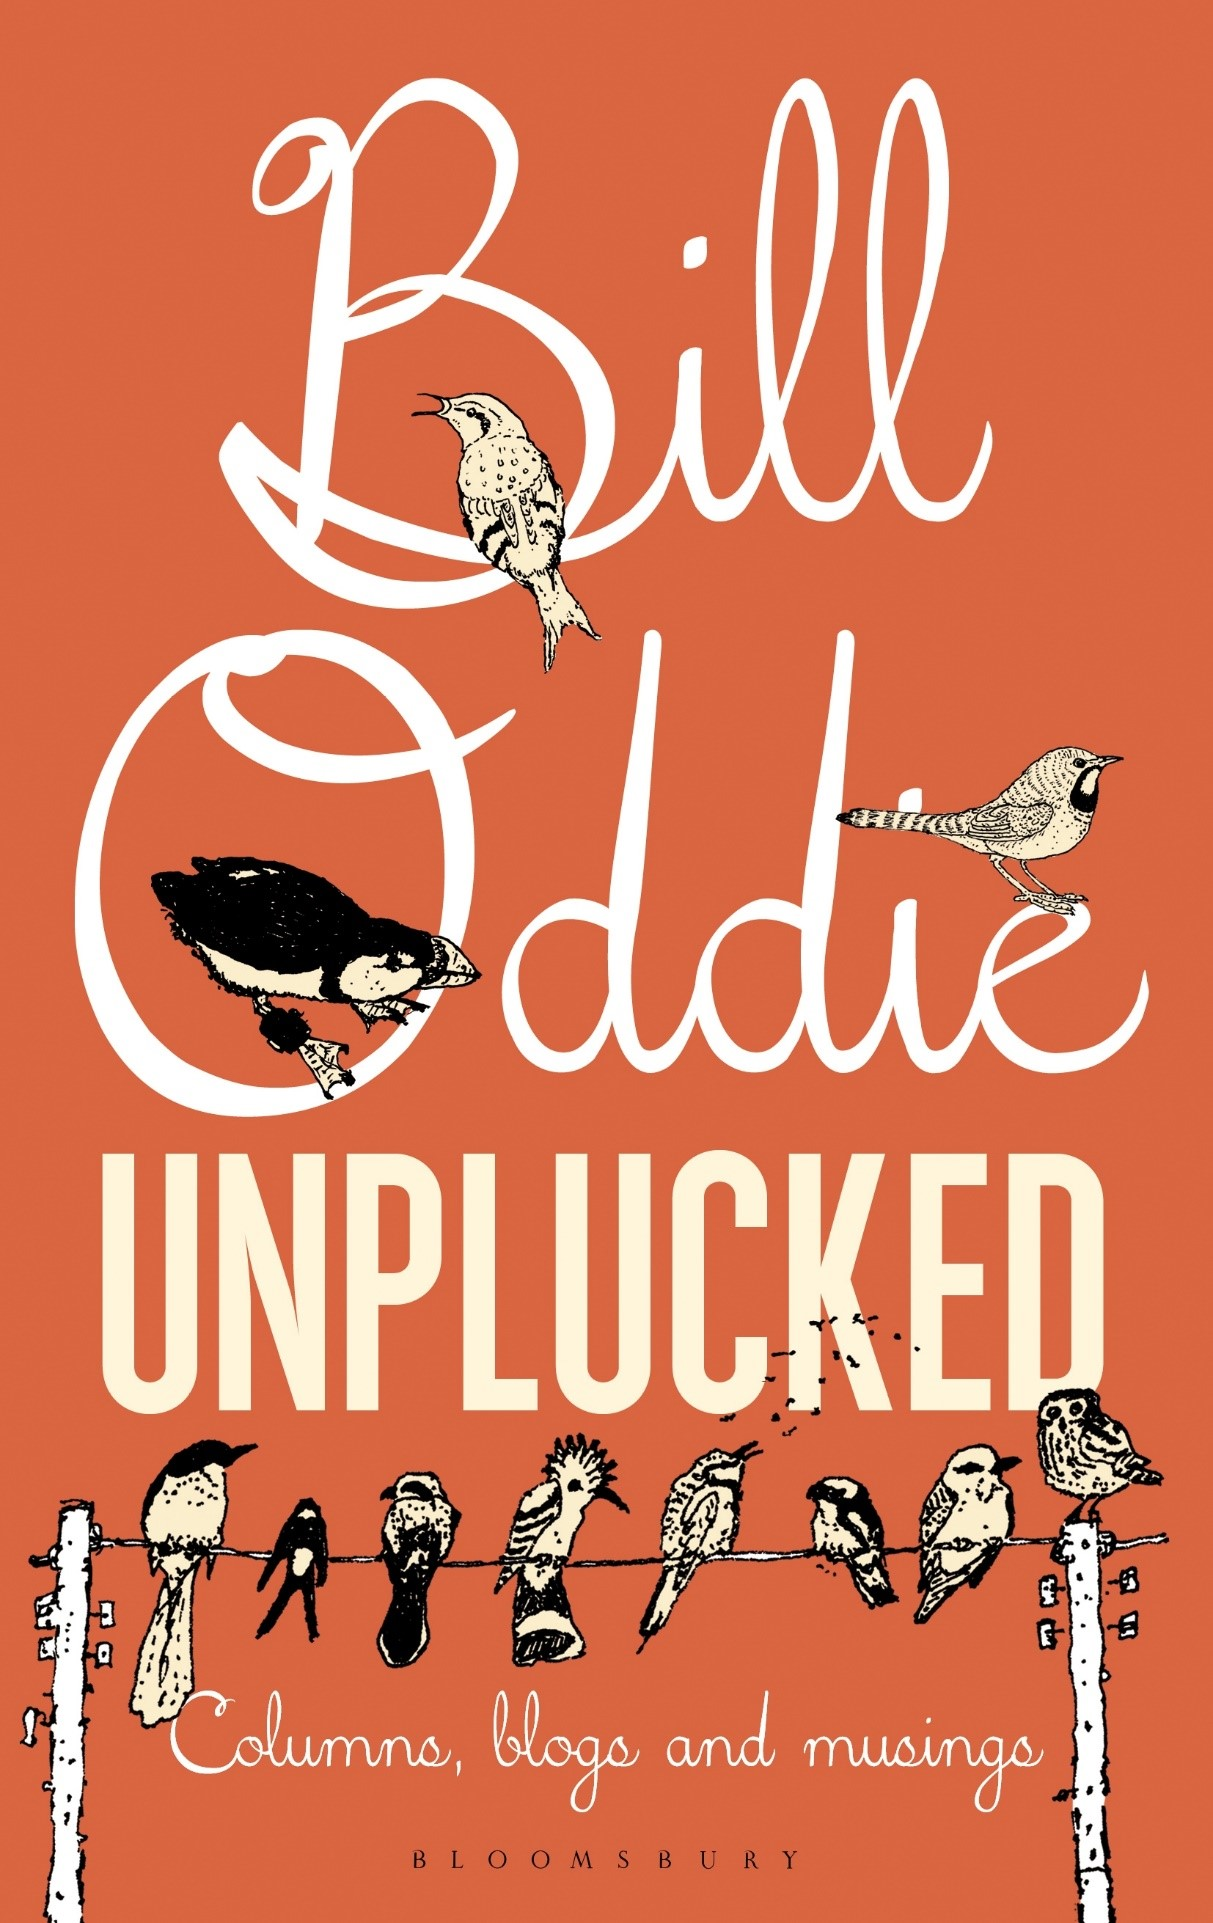 bill oddie unplucked cover